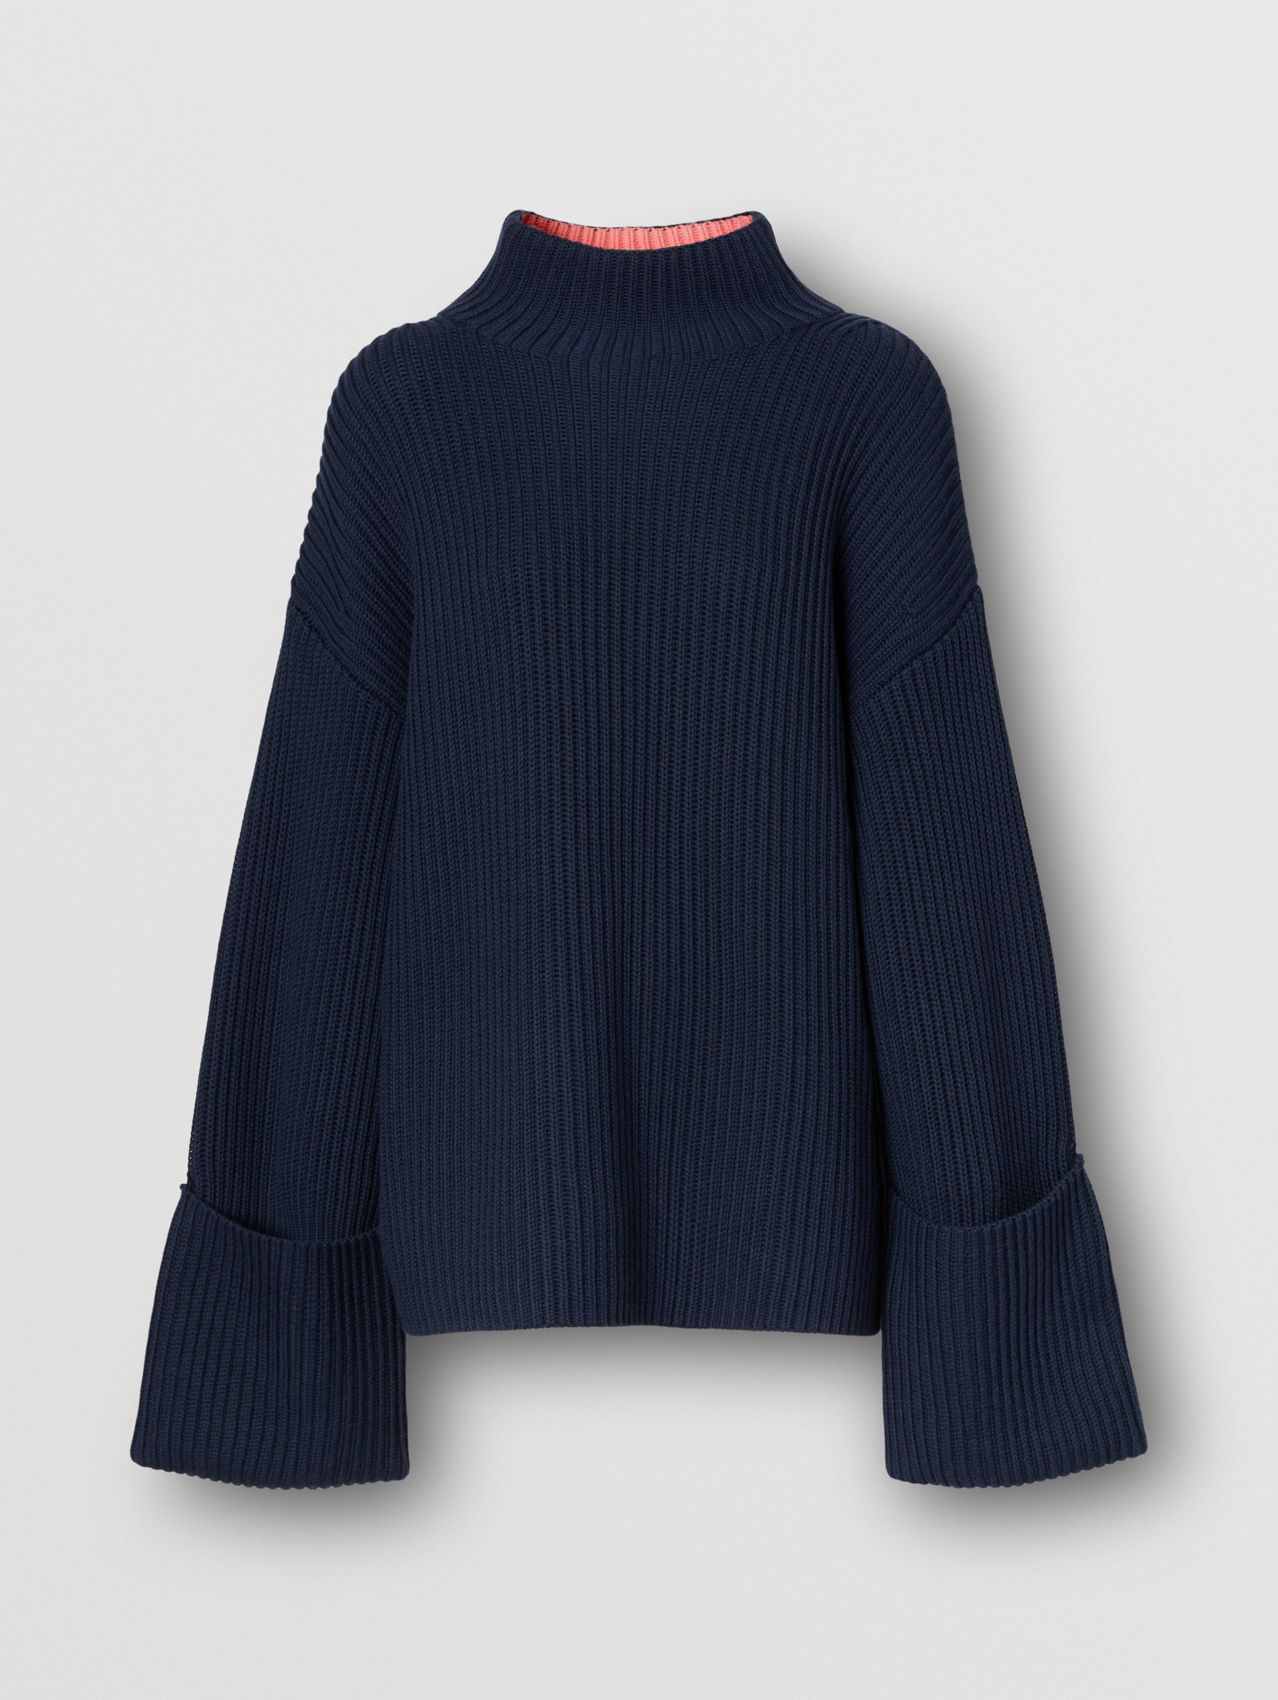 Rib Knit Cotton Cashmere Oversized Sweater in Ink Blue